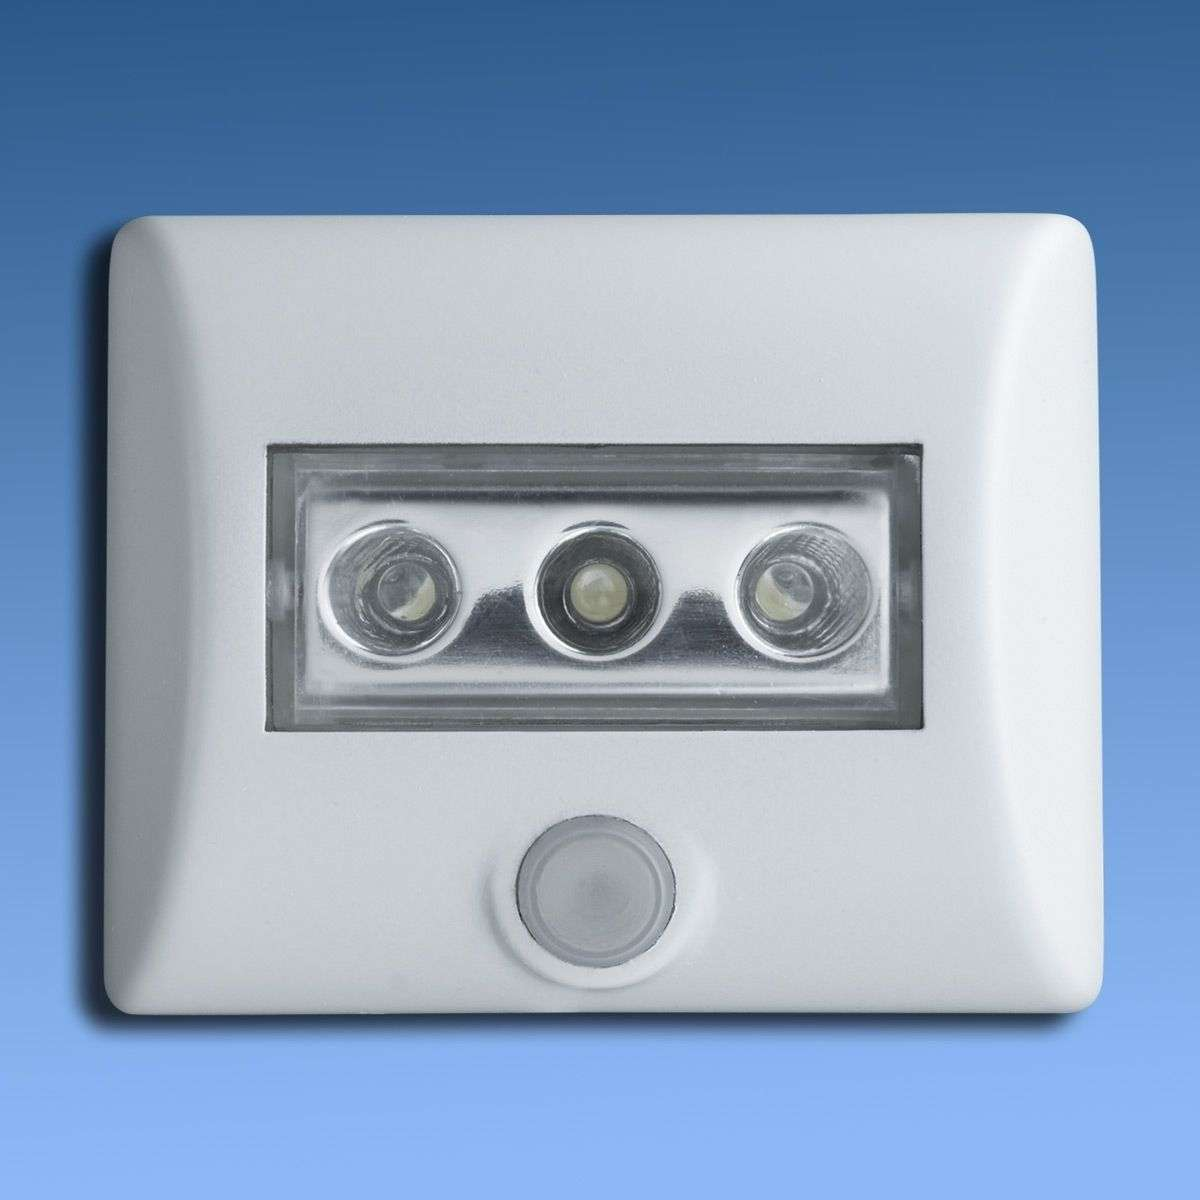 Nightlux led-nachtlampje met sensor-7261058X-31